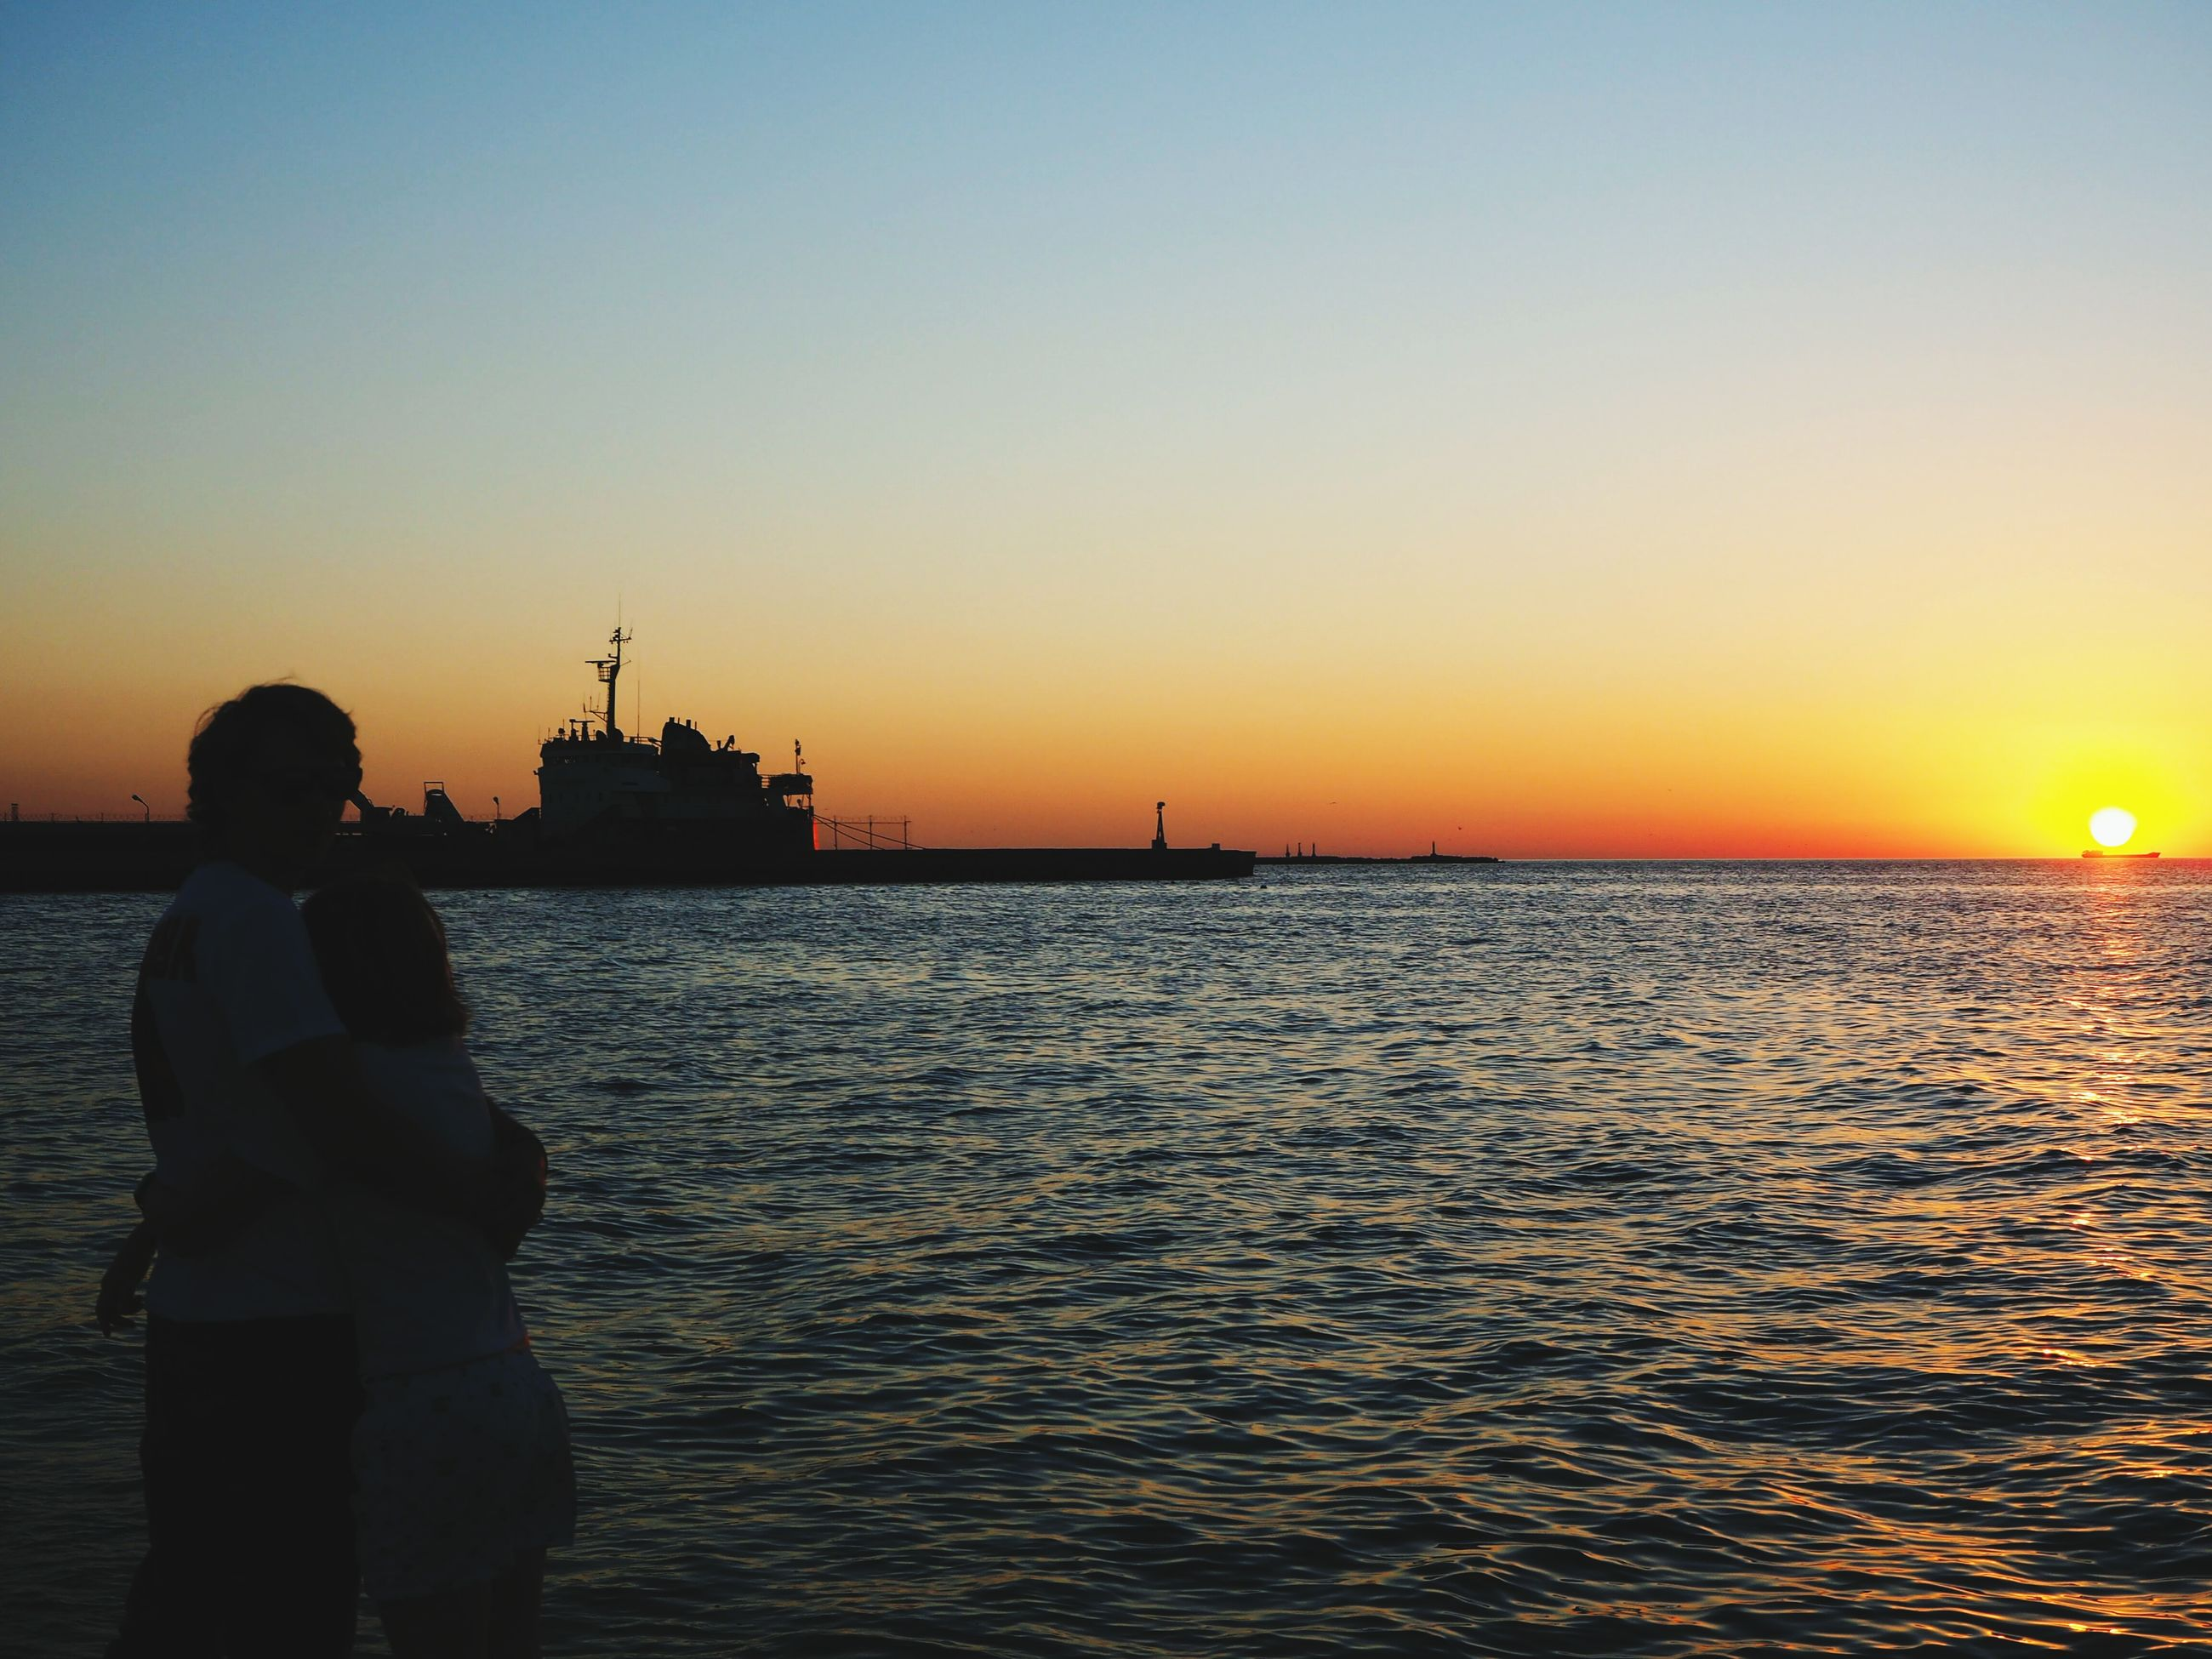 clear sky, sea, sunset, water, standing, silhouette, one person, horizon over water, real people, rippled, outdoors, beauty in nature, nature, sky, day, people, adult